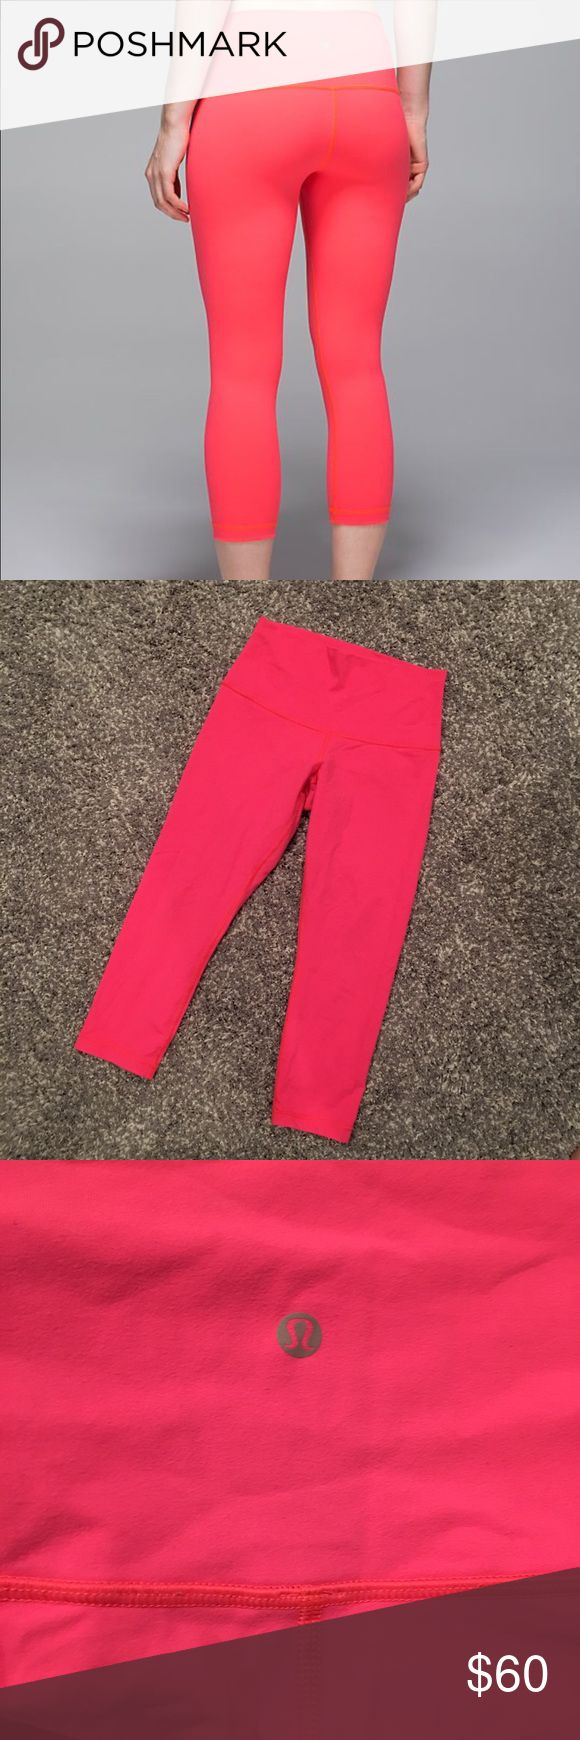 Lululemon Wunder Under Crop size 8 electric coral Lululemon Wunder Under Crop in electric coral. Size tag removed but these are an 8. Only worn a couple times. There is a loose hem (very slight) see pic. Any lululemon store will fix that for free! Otherwise great condition!! High rise but can be worn folded down.  Offers welcome. Bundle and save. lululemon athletica Pants Leggings